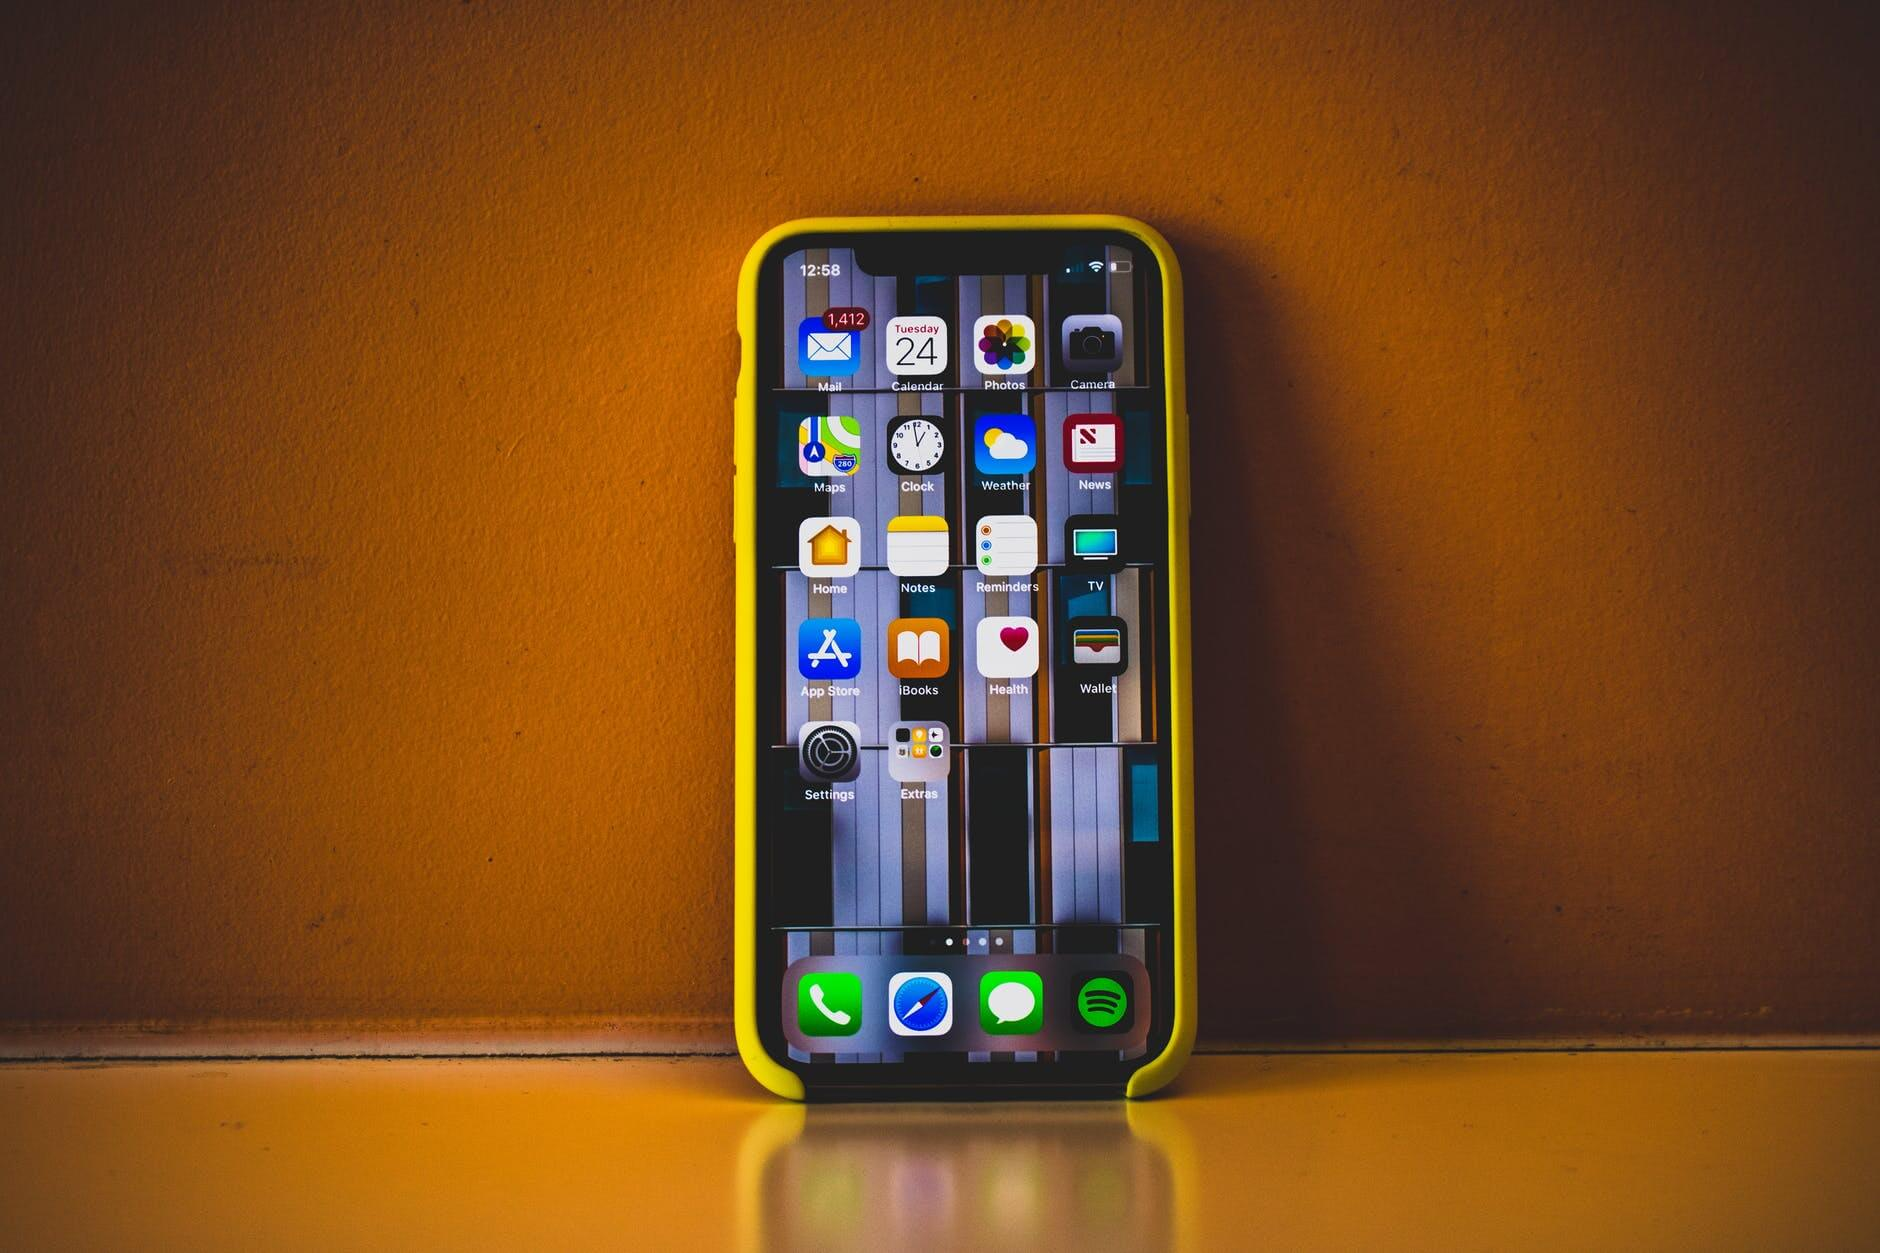 5 Best Apple iPhone Launchers for Android: Easy and Lightweight